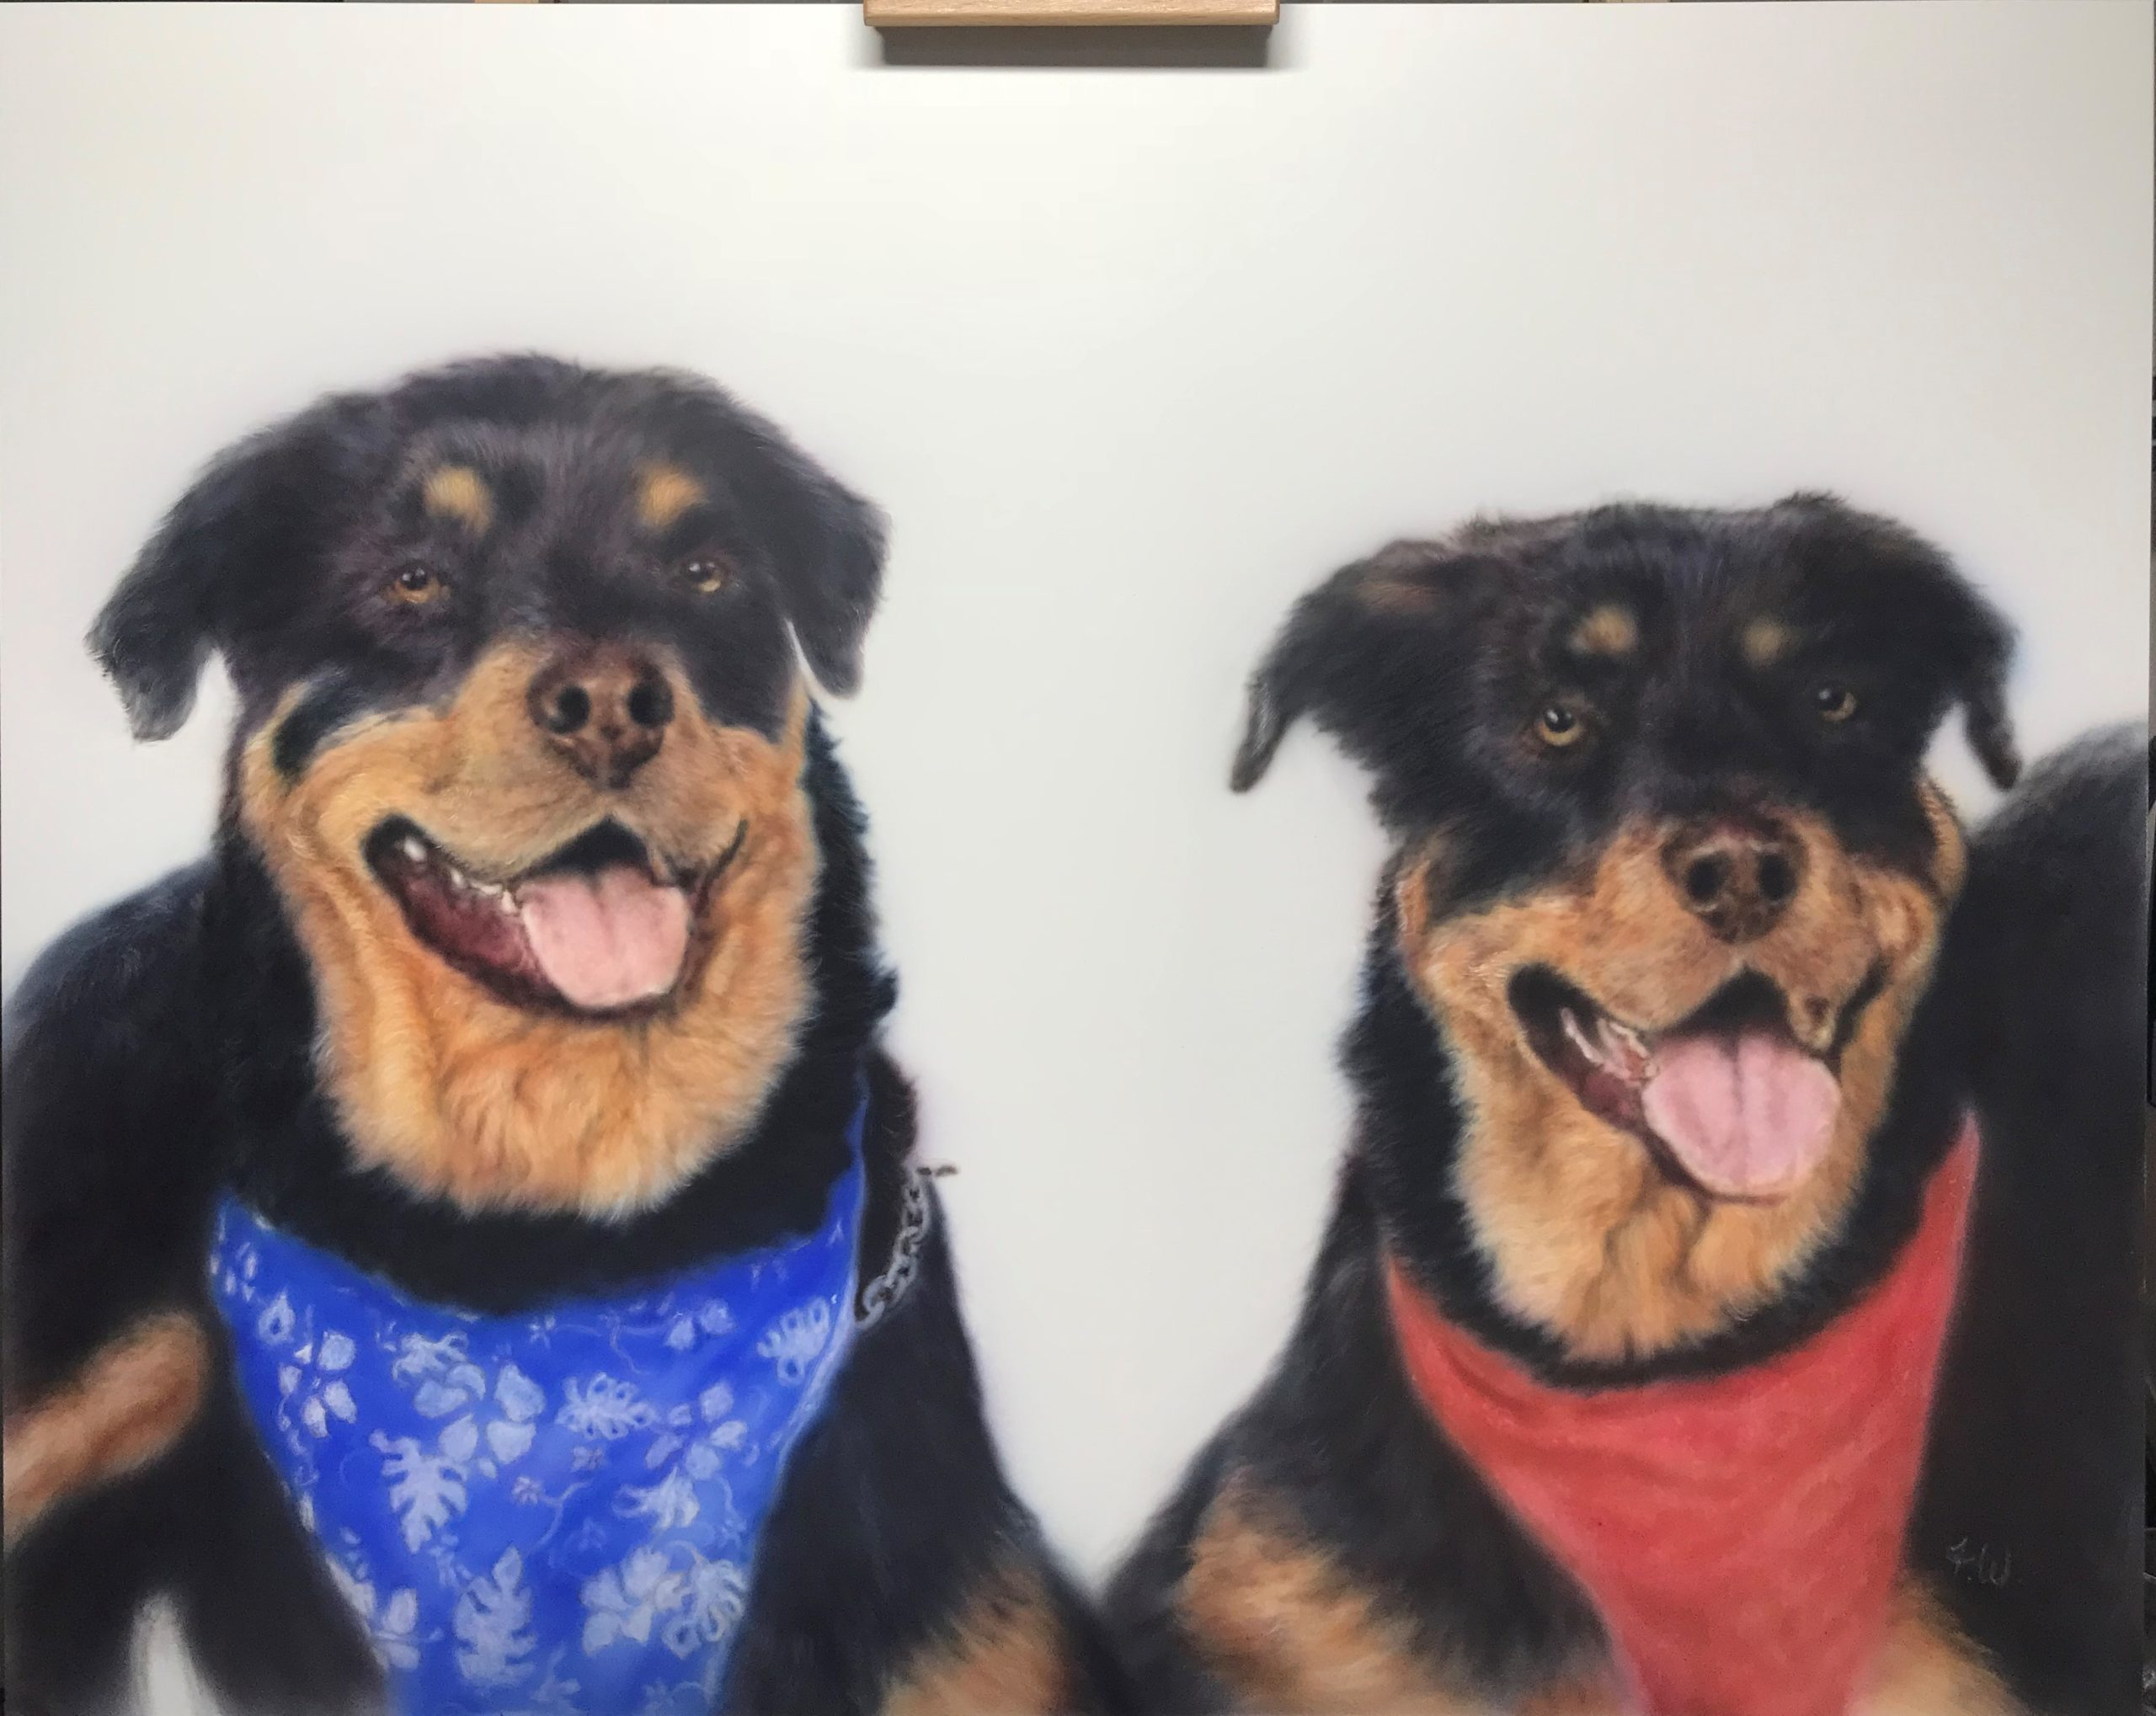 Actual Aritist's Painting of Mike Harris's Dogs